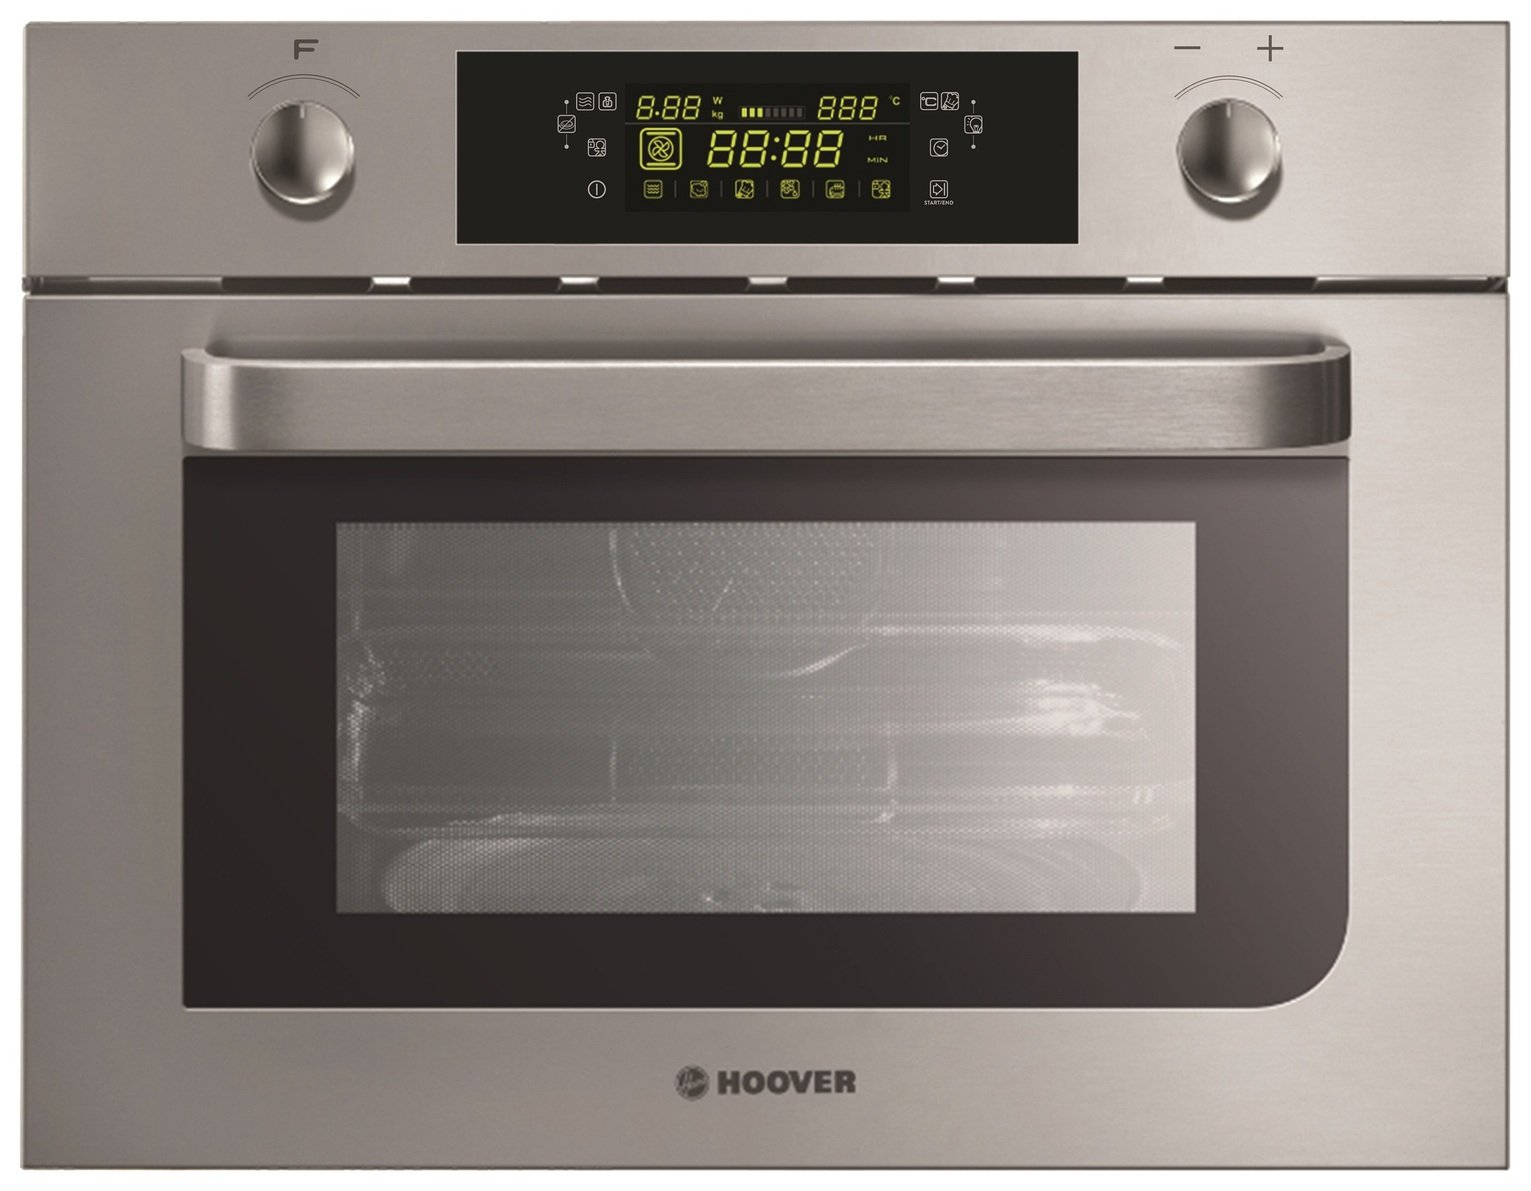 Hoover HMC440PX 900W Microwave - Stainless Steel